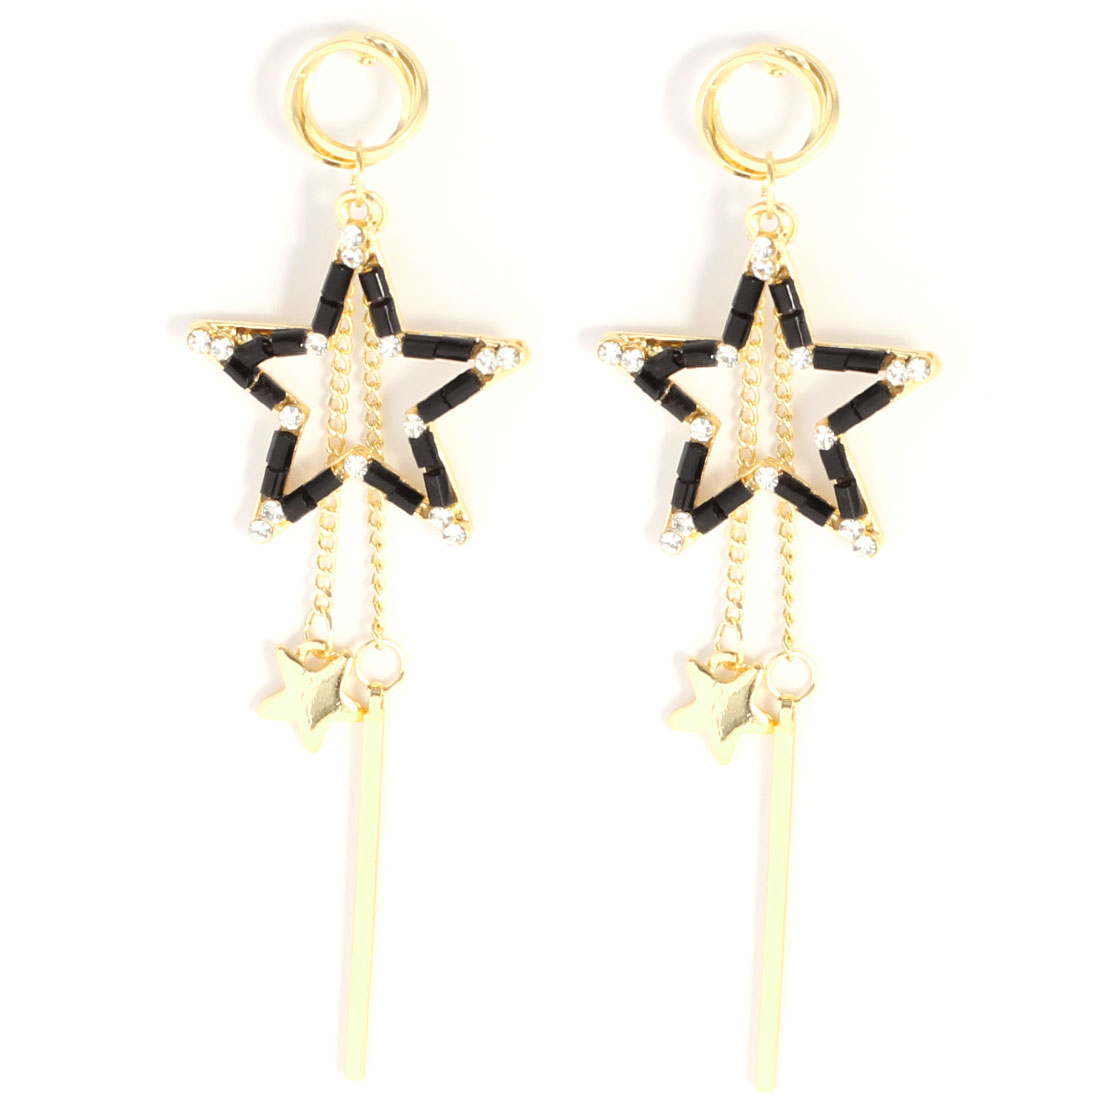 Gold Tone Black Star Linear Pendant Earrings for Lady